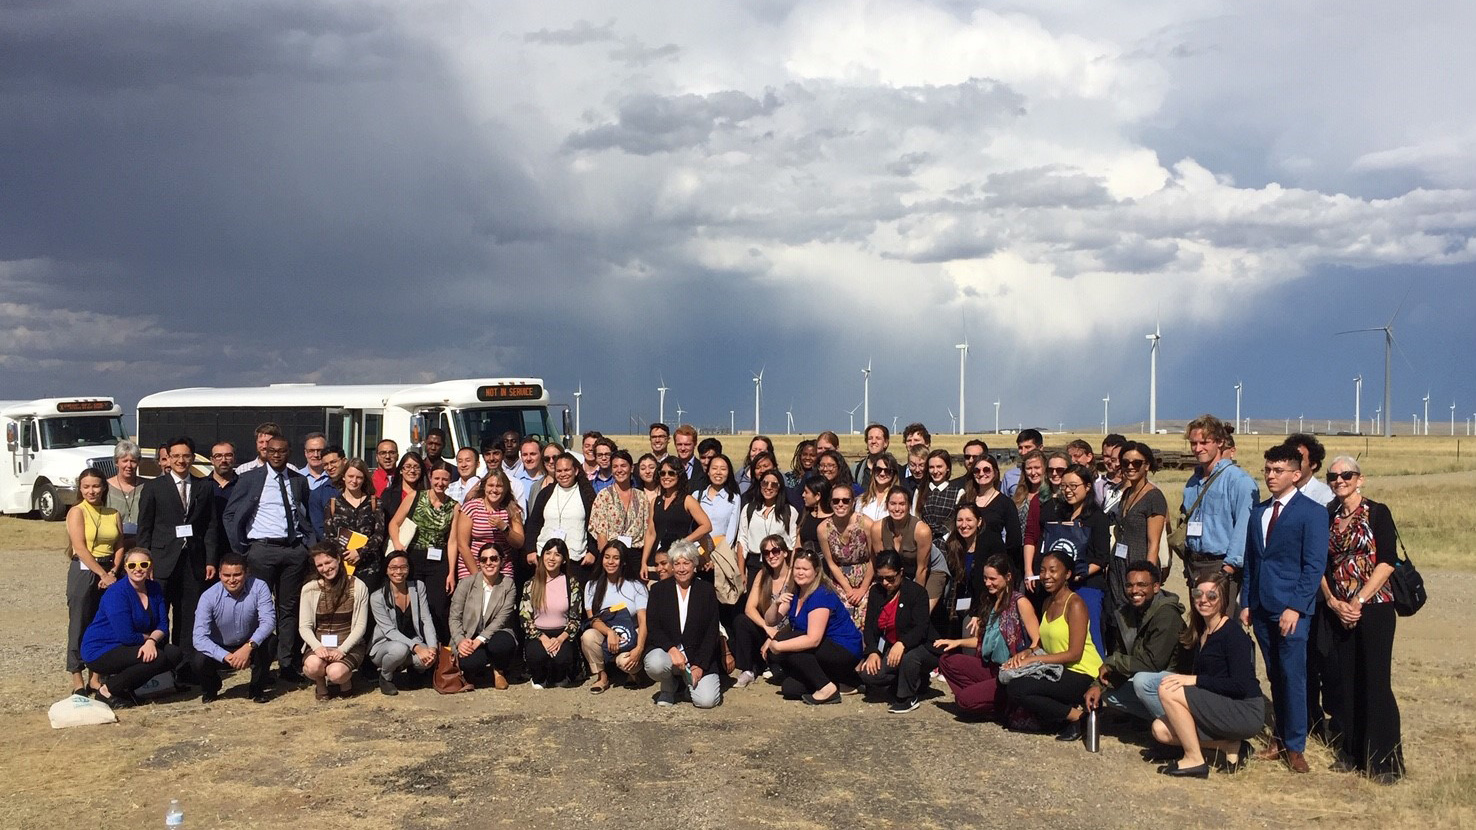 Group photo at wind farm